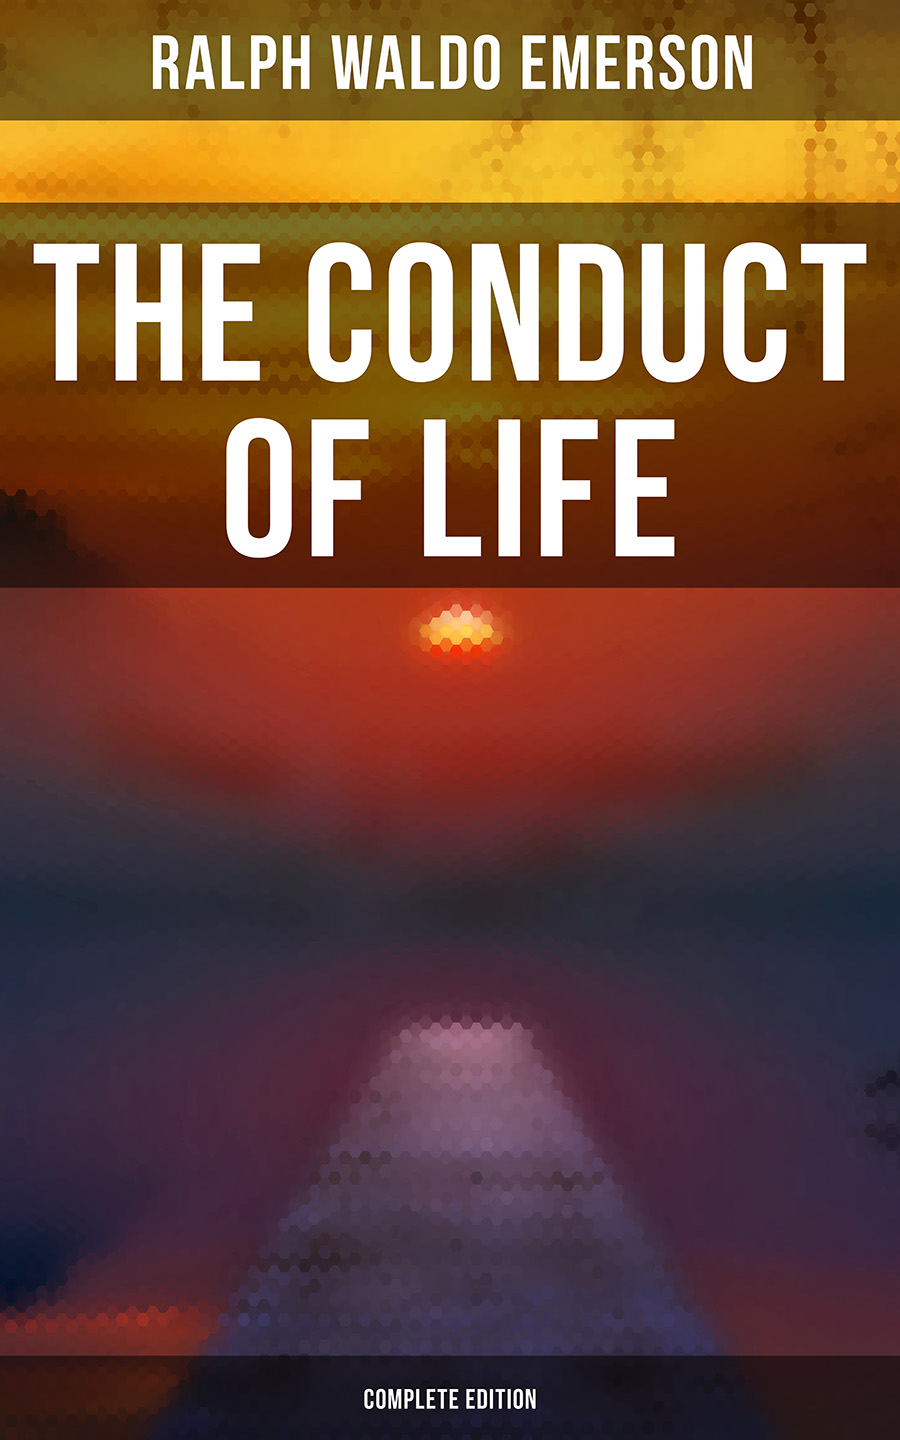 Ralph Waldo Emerson The Conduct of Life (Complete Edition)